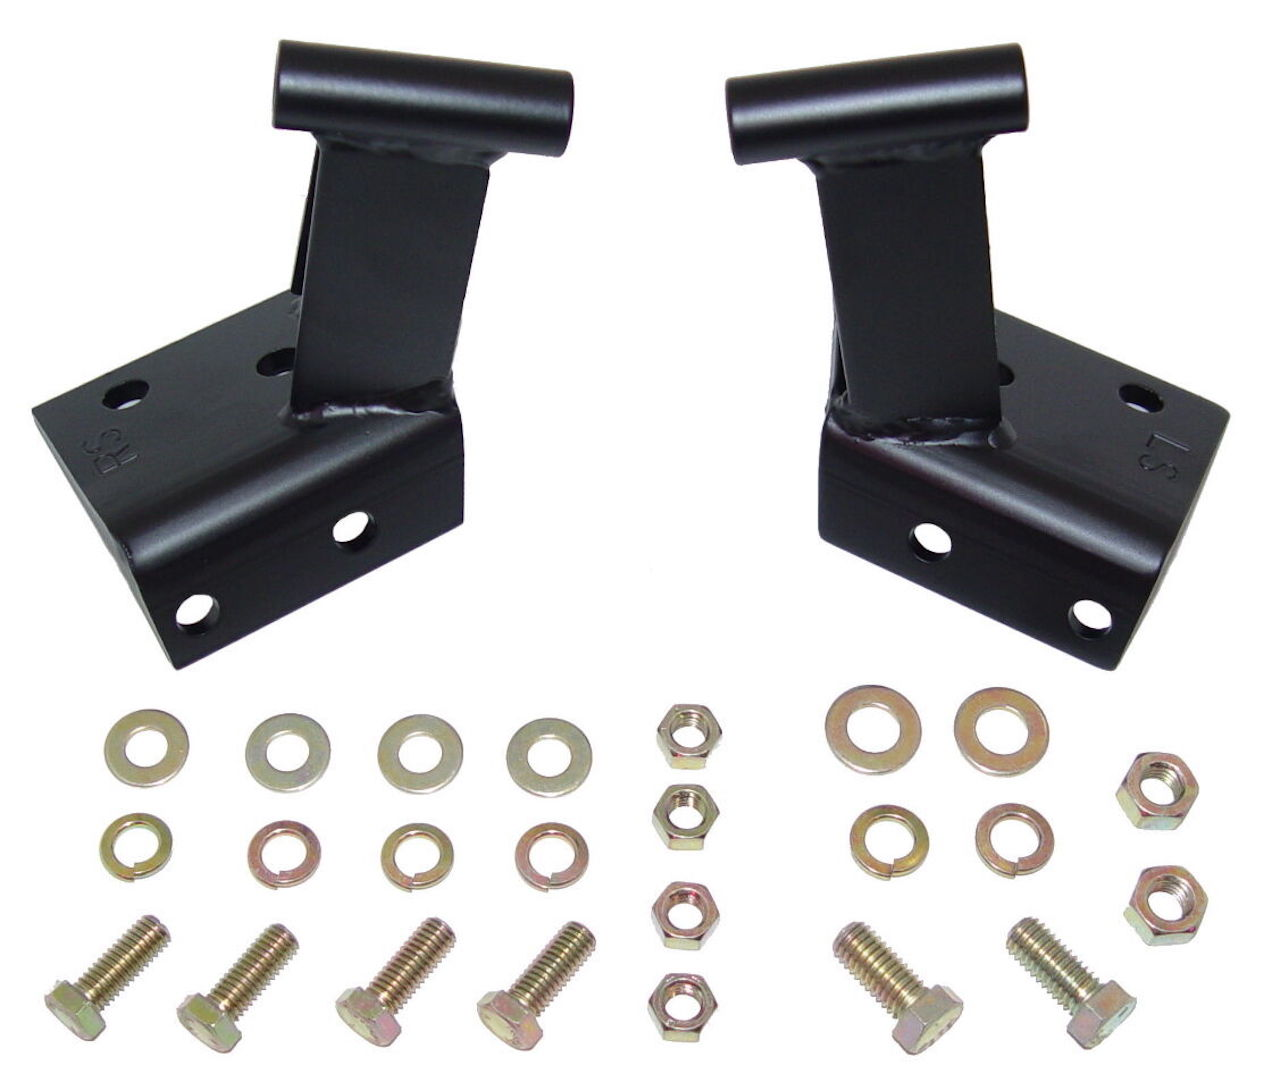 1955 1956 1957 Chevy V-8 Small Block Side Motor Mount Conversion Kit